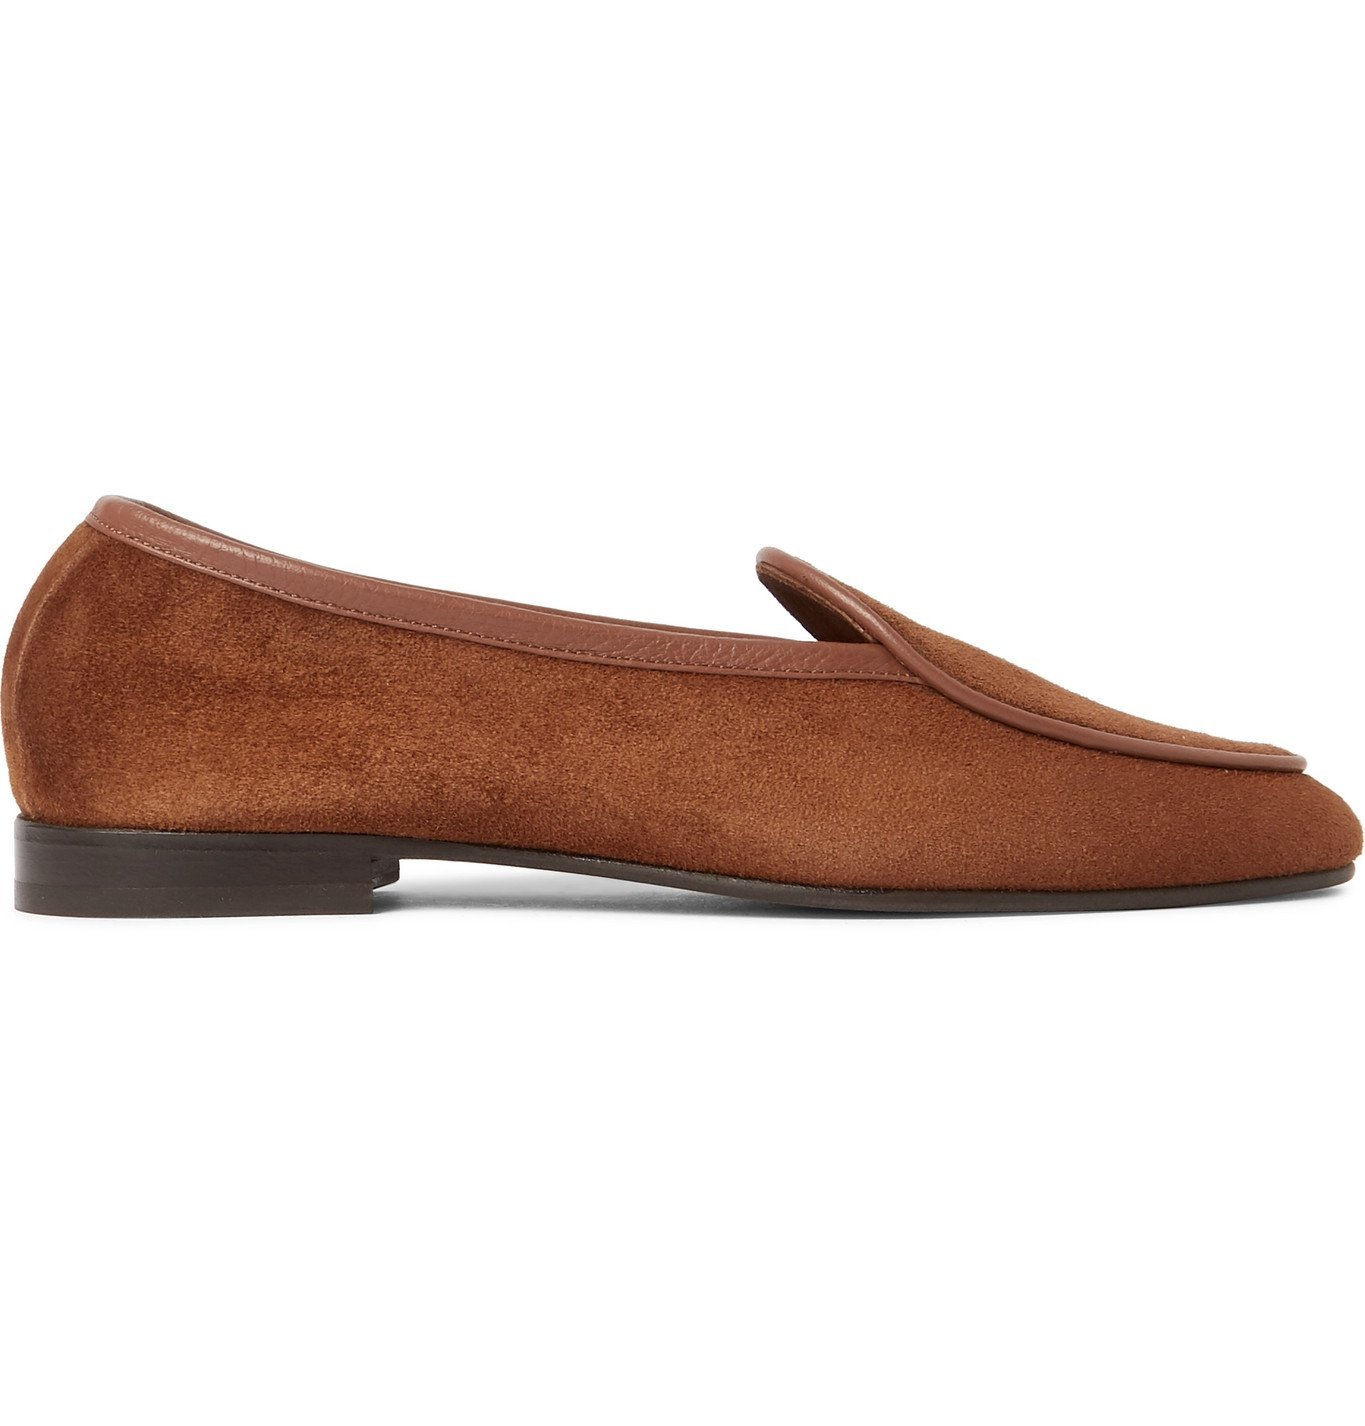 George Cleverley - Hampton Leather-Trimmed Suede Loafers - Brown